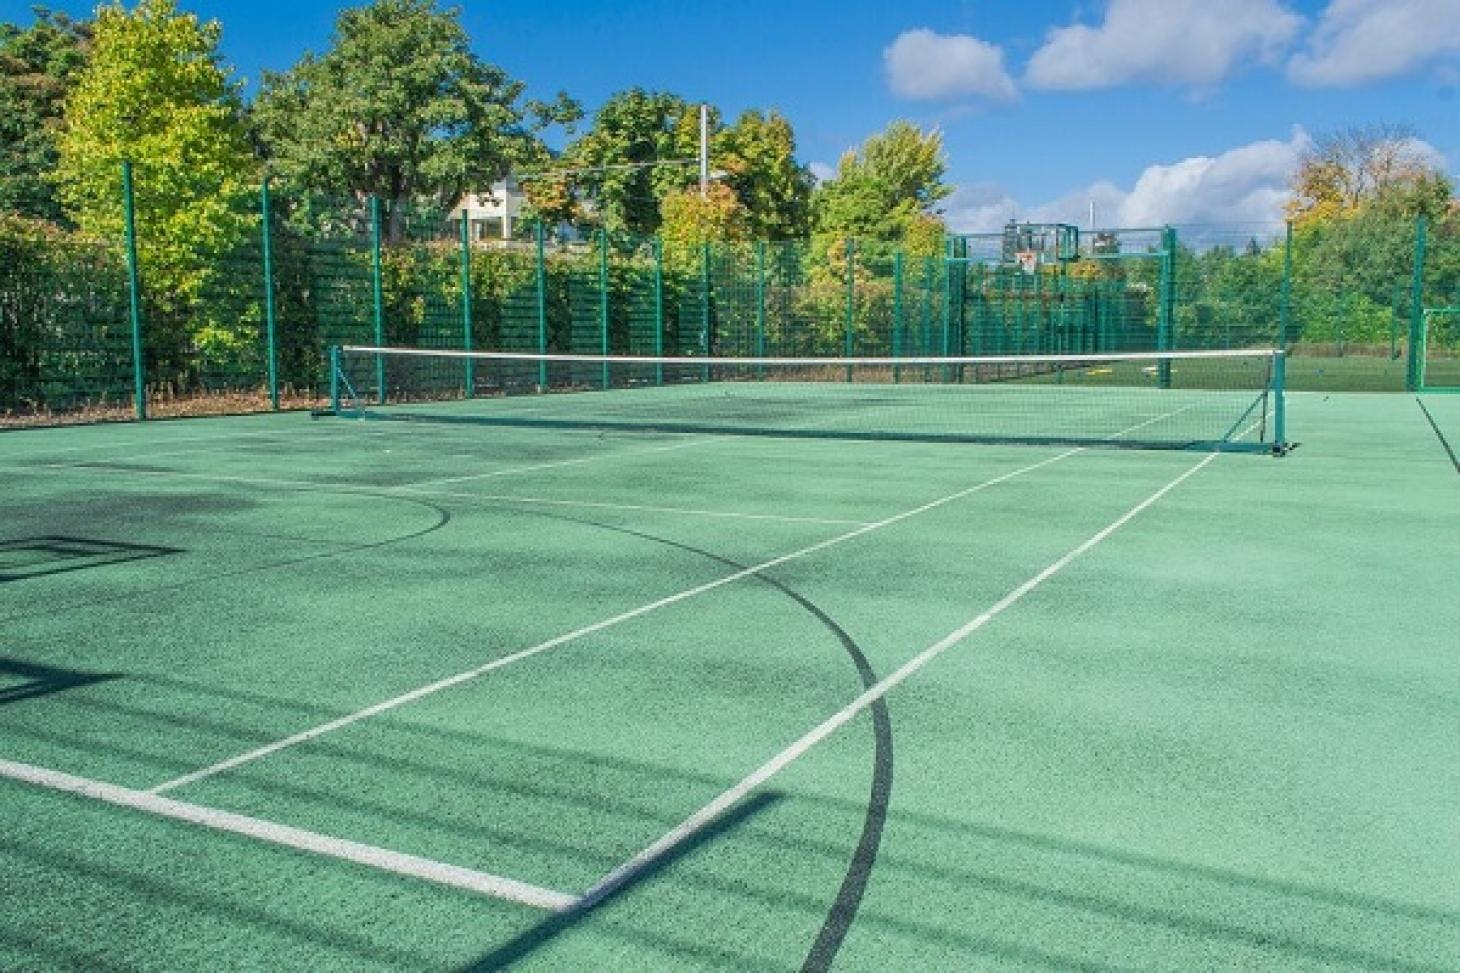 Alexandra College Outdoor | Astroturf tennis court